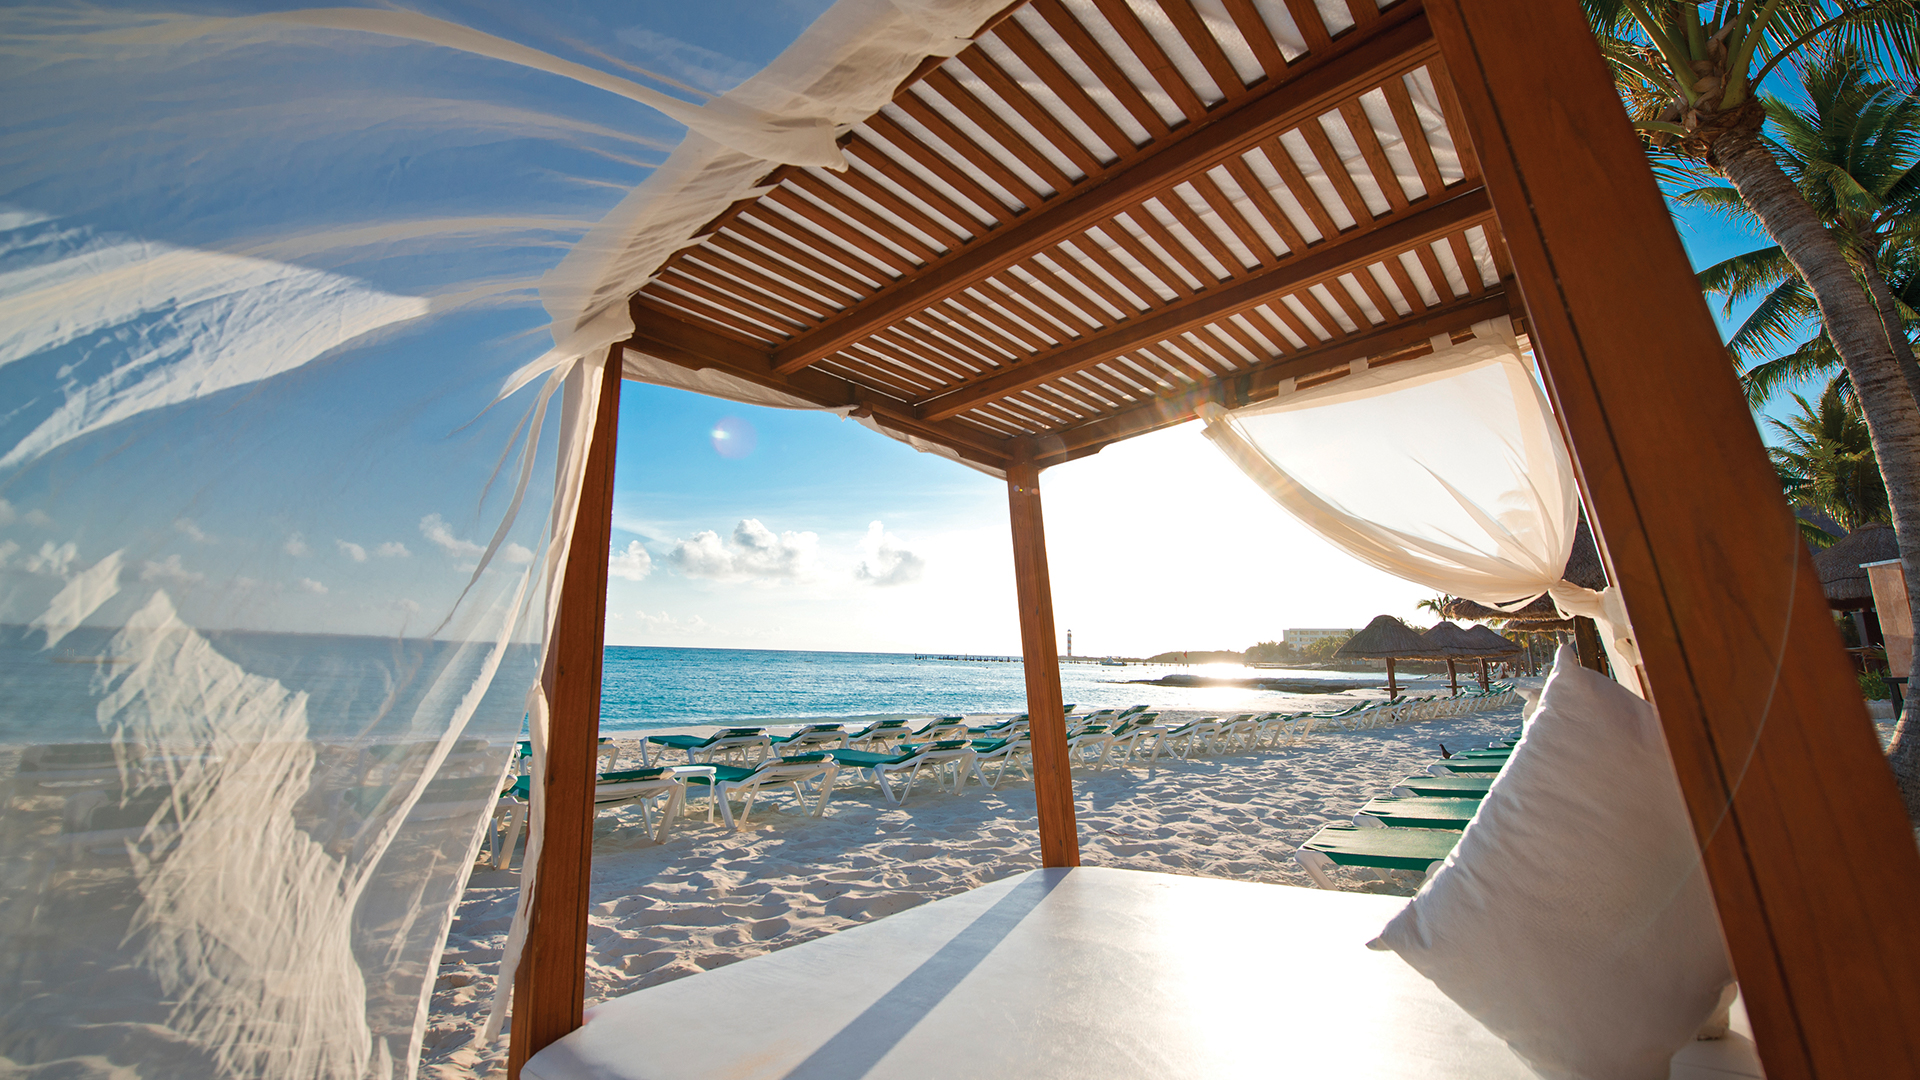 Private beach cabana in Cancun